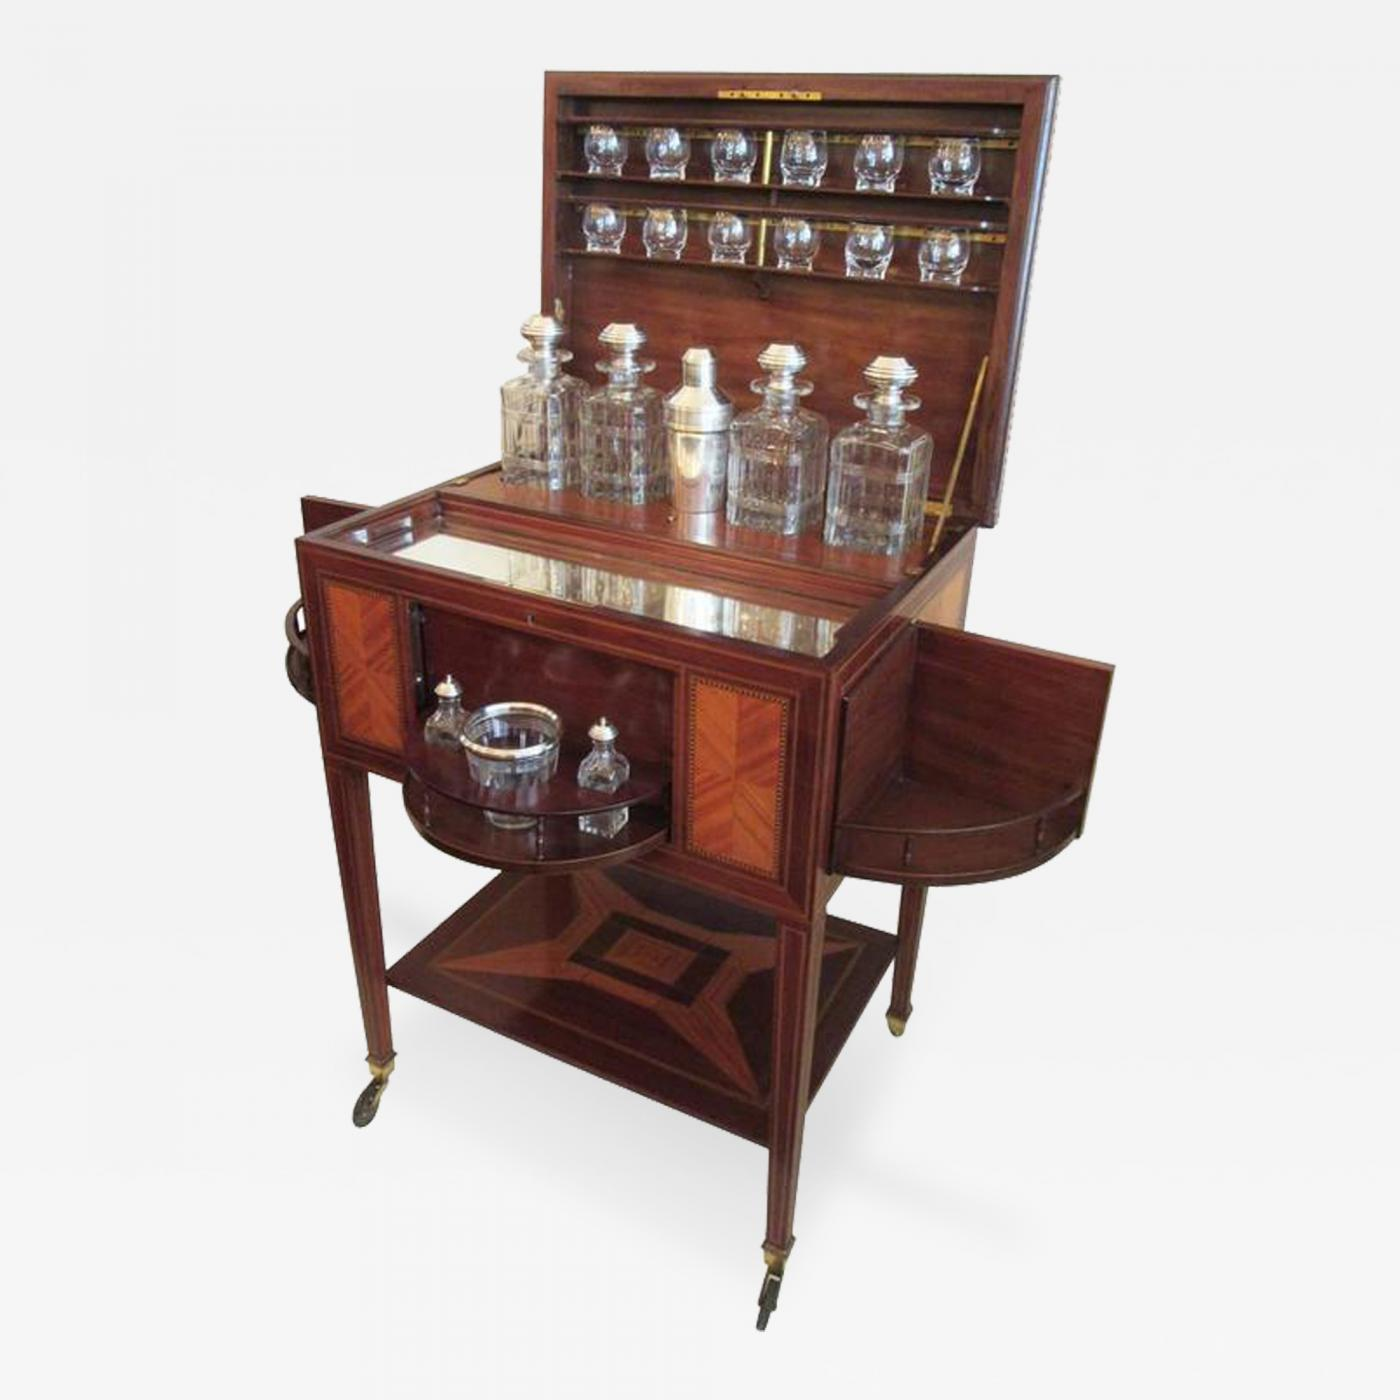 Maison Boin Taburet 19th C French Art Deco Drinks Cabinet